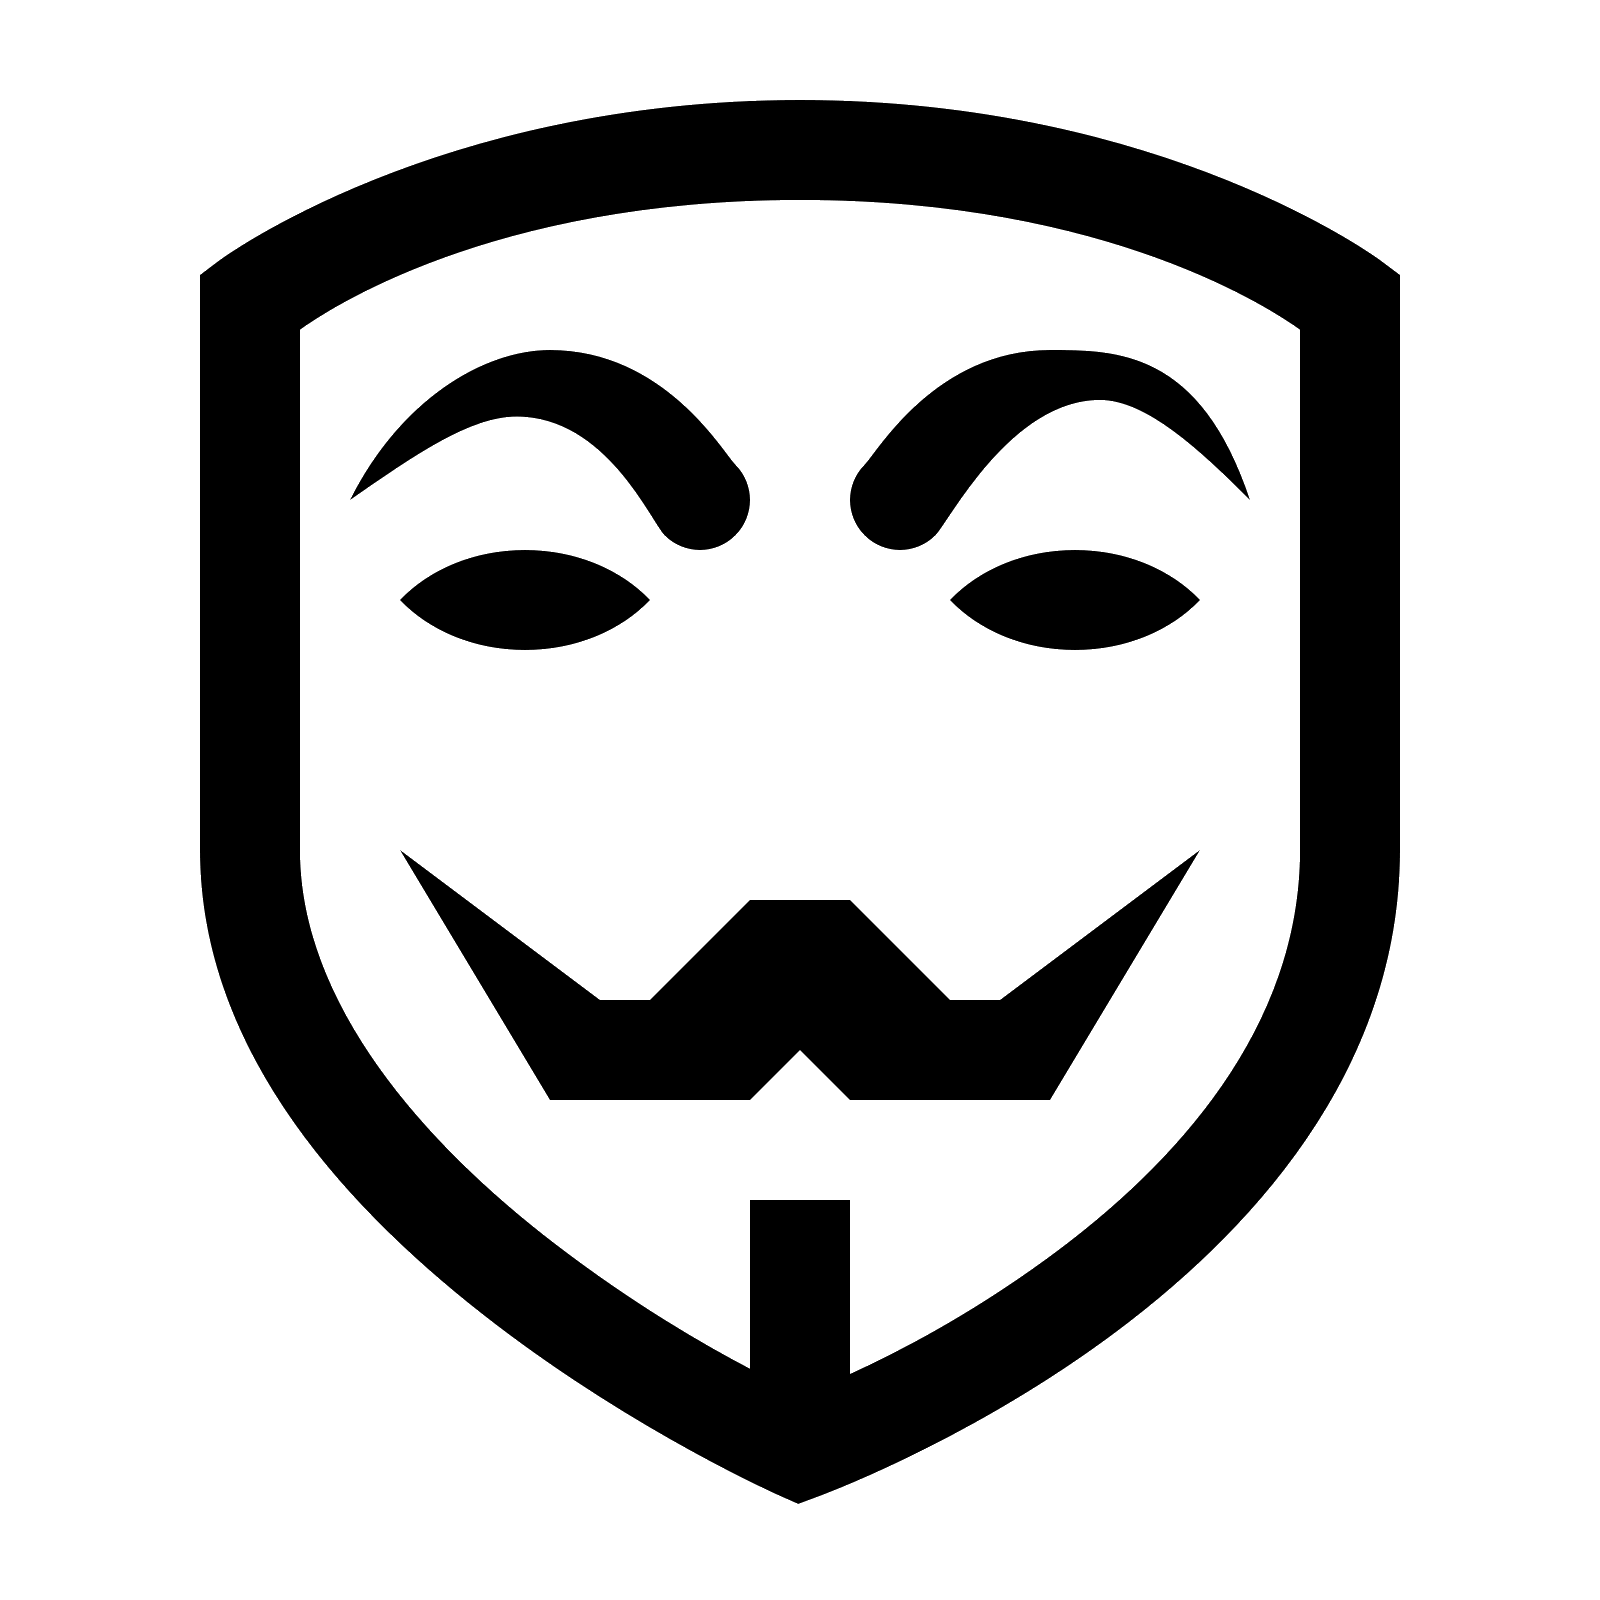 hight resolution of person svg anonymous mask icon kostenloser download